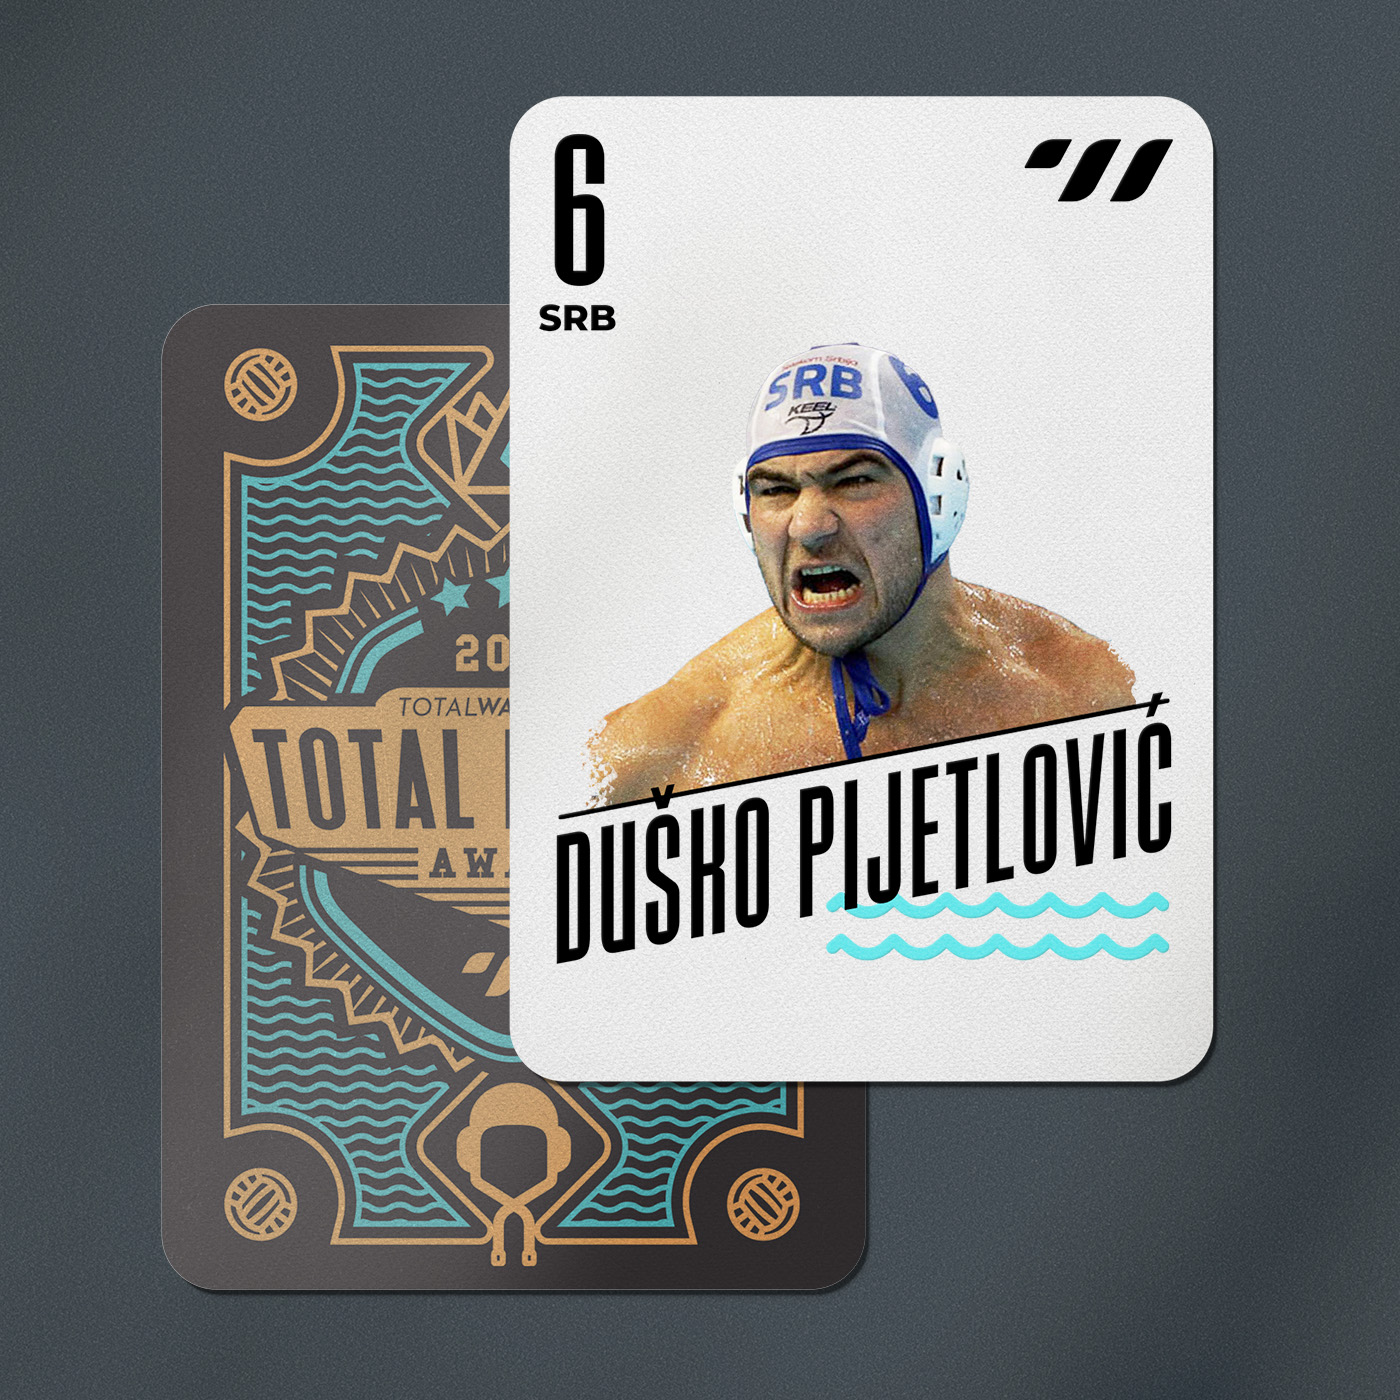 CENTER FORWARD - Dusko Pijetlovic (SRB)